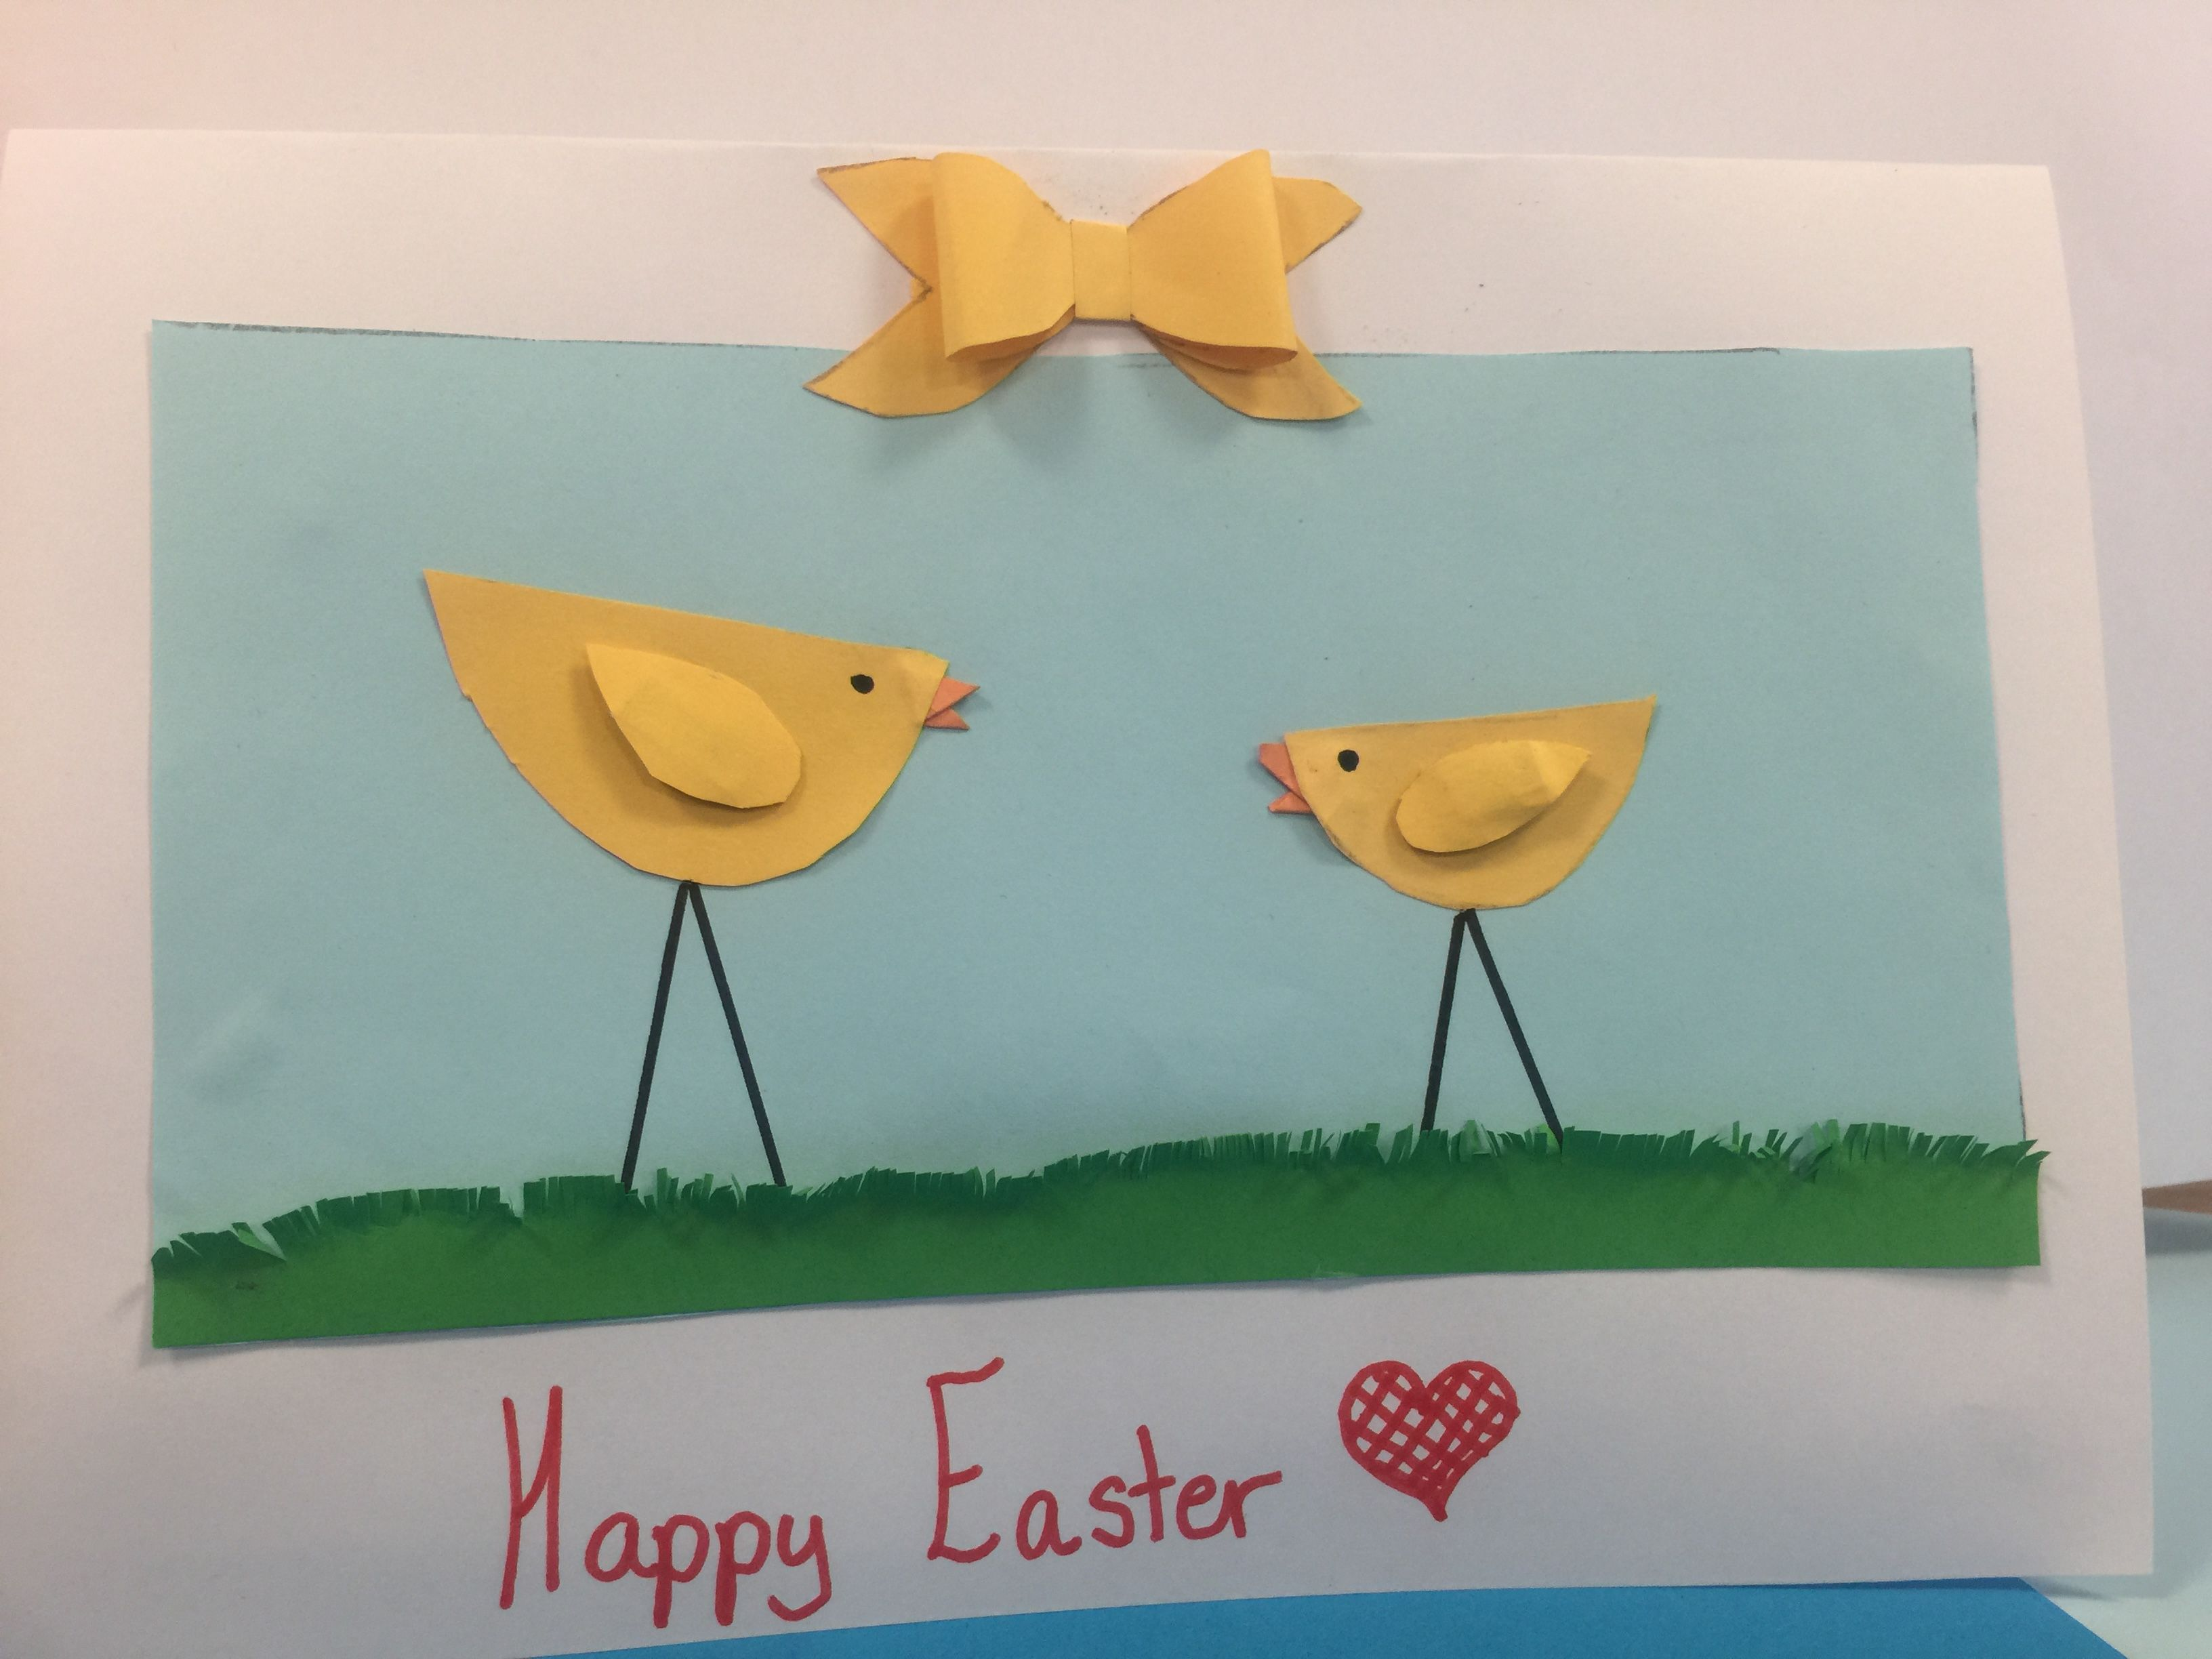 Gartreeadt Incredible Easter Card Ideas By Year 6 Ks2 Easter Cards Easter Crafts